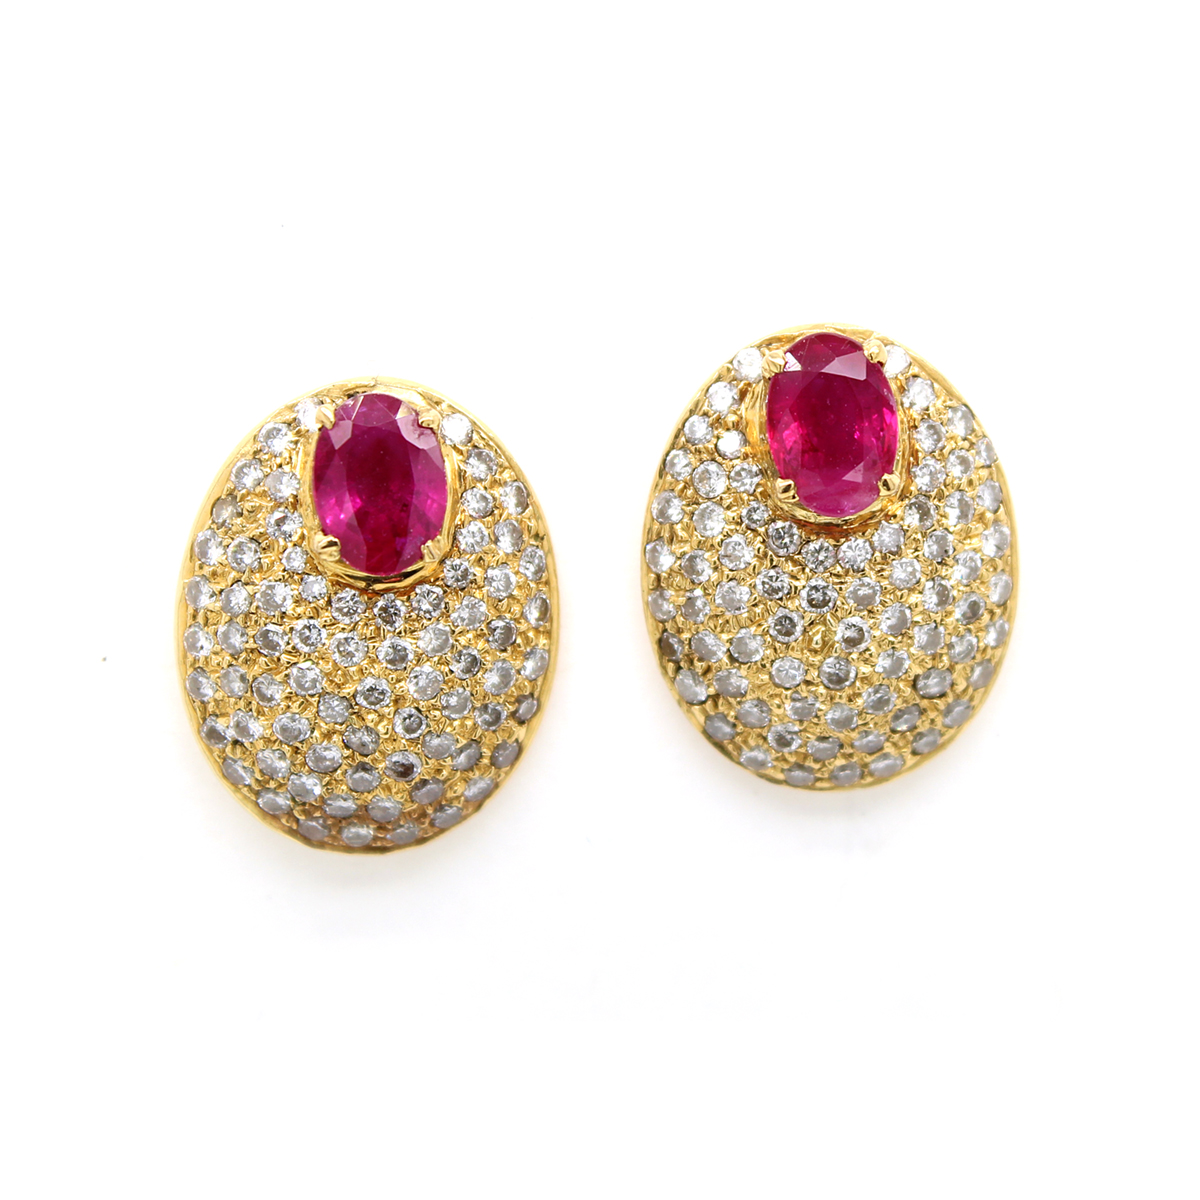 Vintage 14 Karat Yellow Gold Oval Ruby and Diamond Pave Earrings